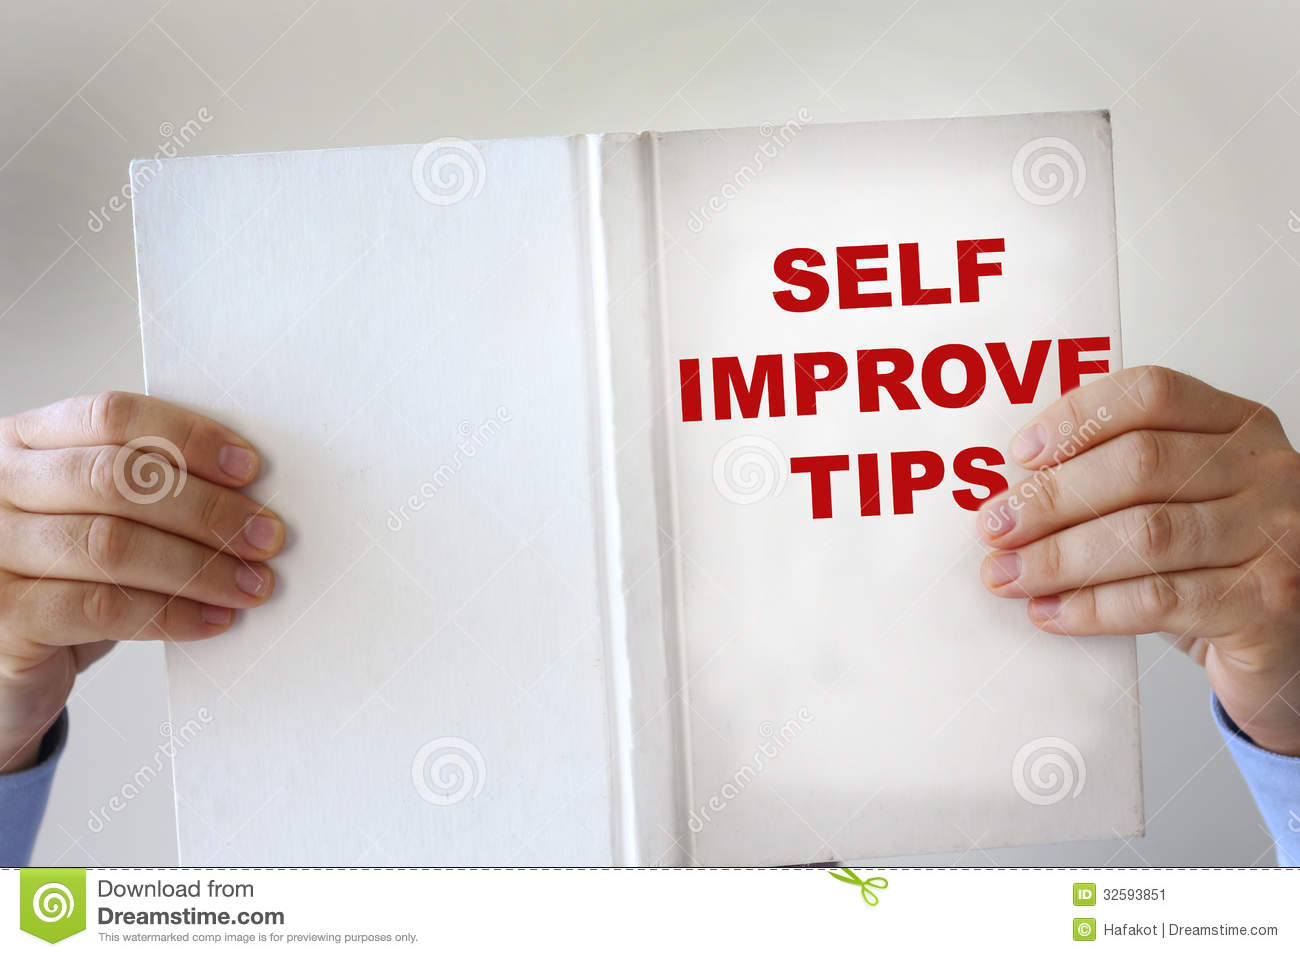 self improvement fake book stock image image of hands 32593851